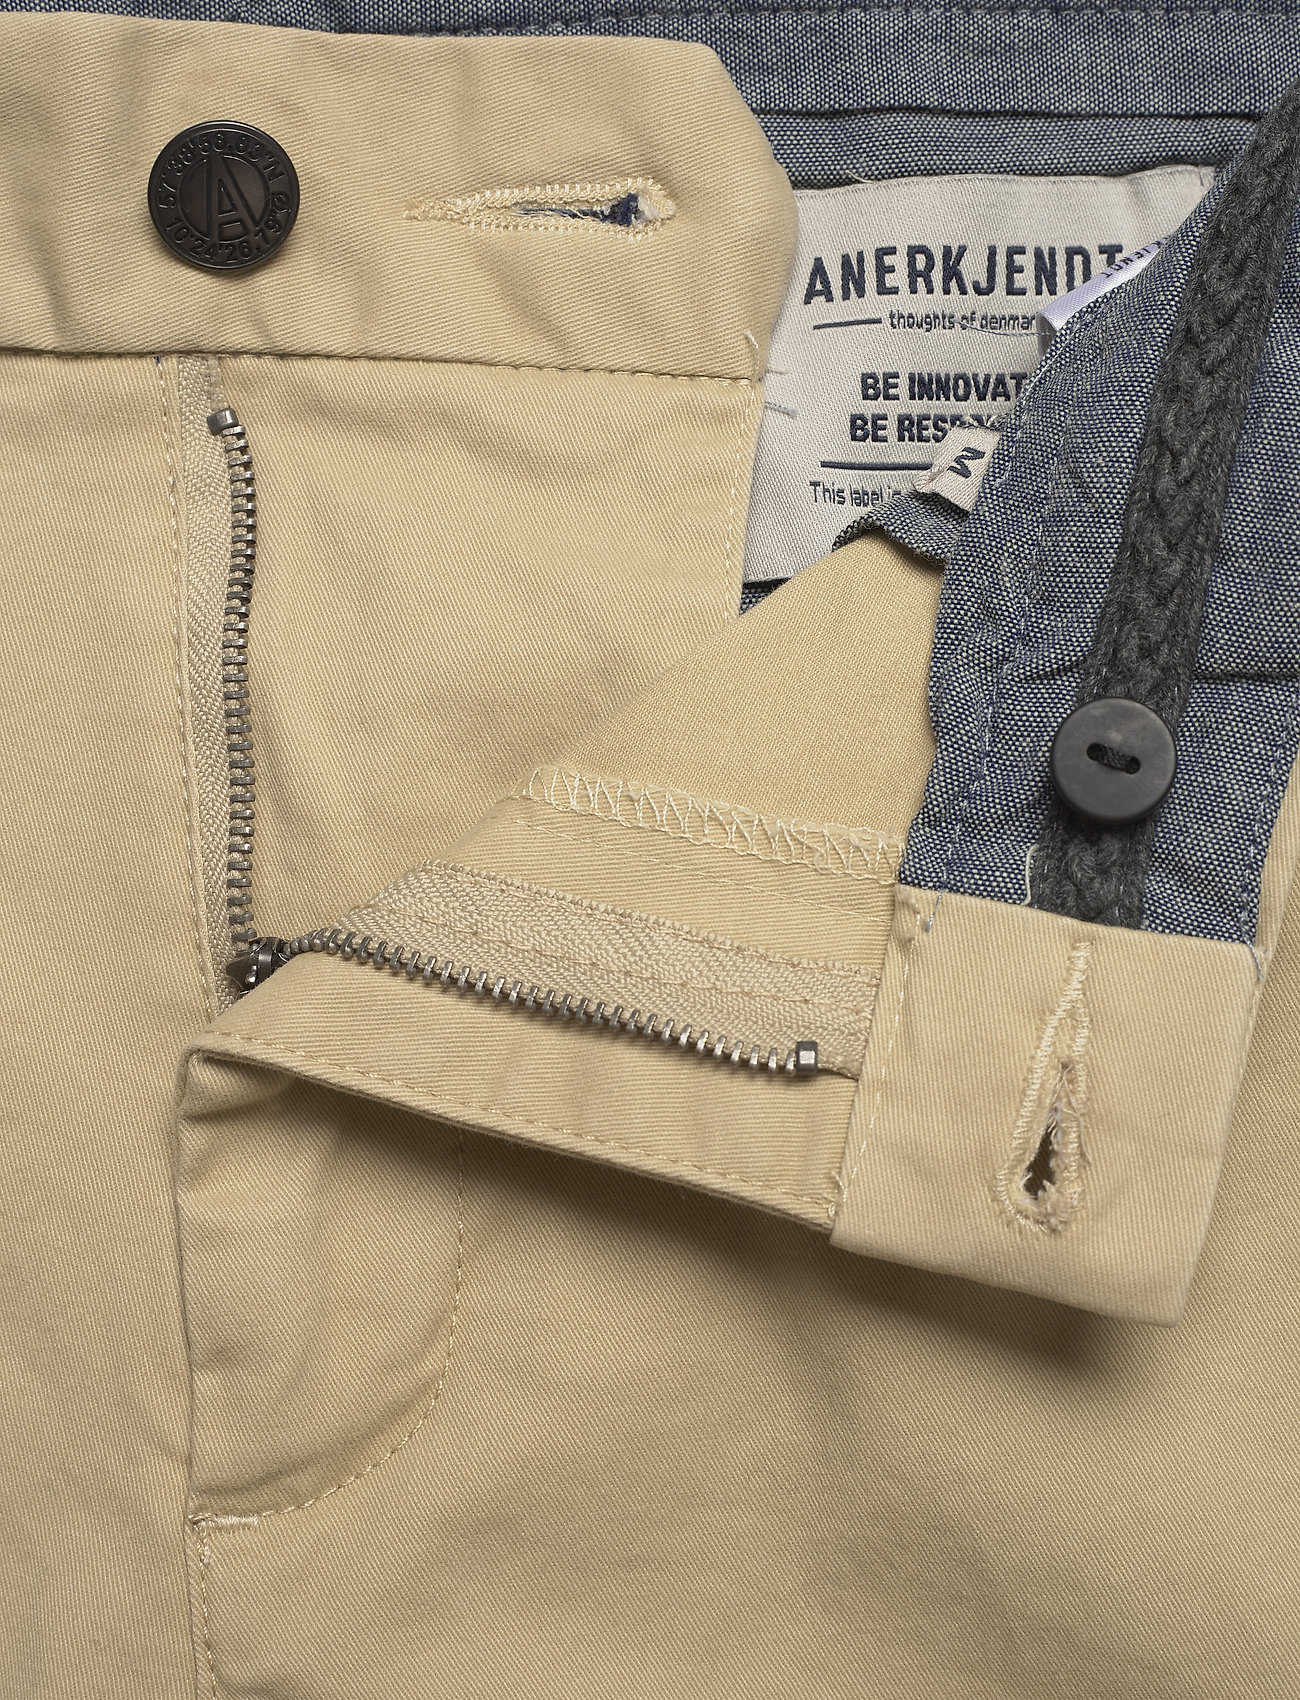 Akhalli Shorts (Brown Rice) (400 kr) - Anerkjendt